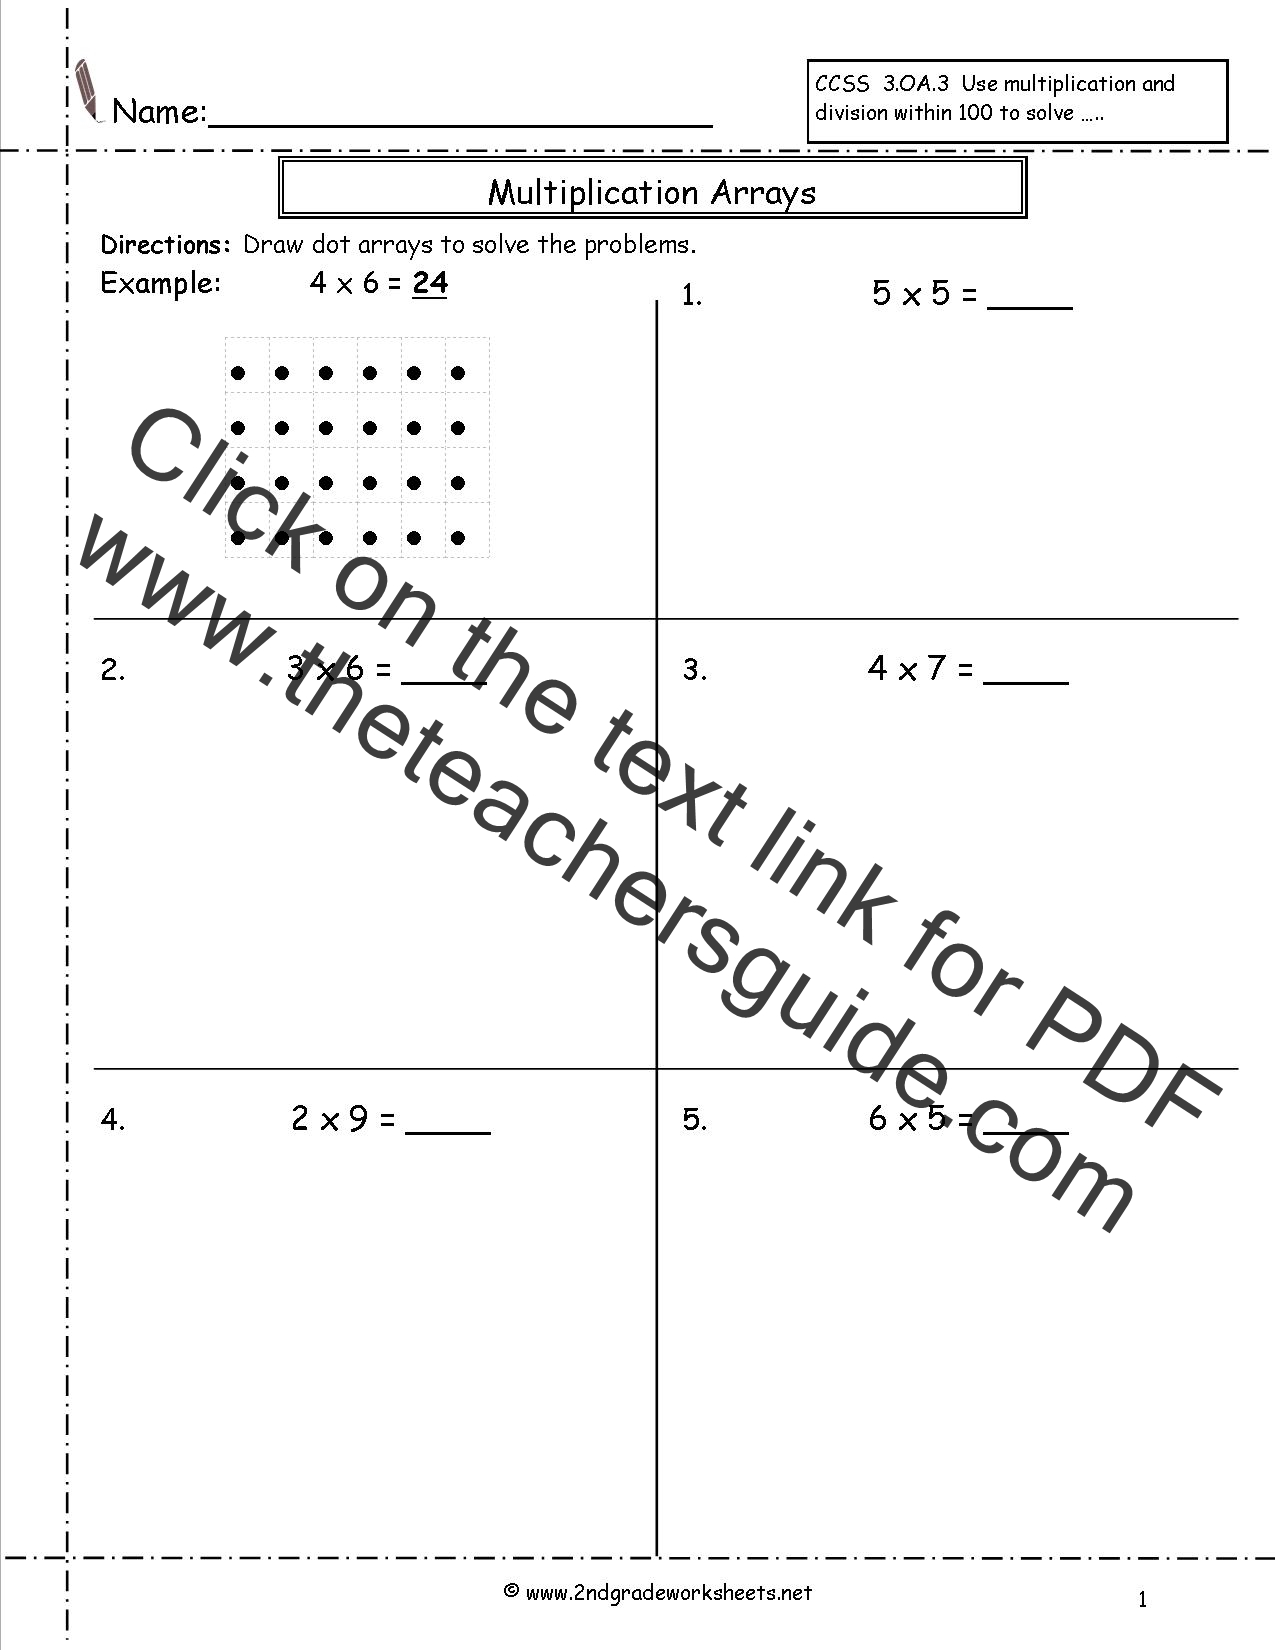 Worksheets Teaching Multiplication Worksheets multidrawdotarrays jpg multiplication array worksheets